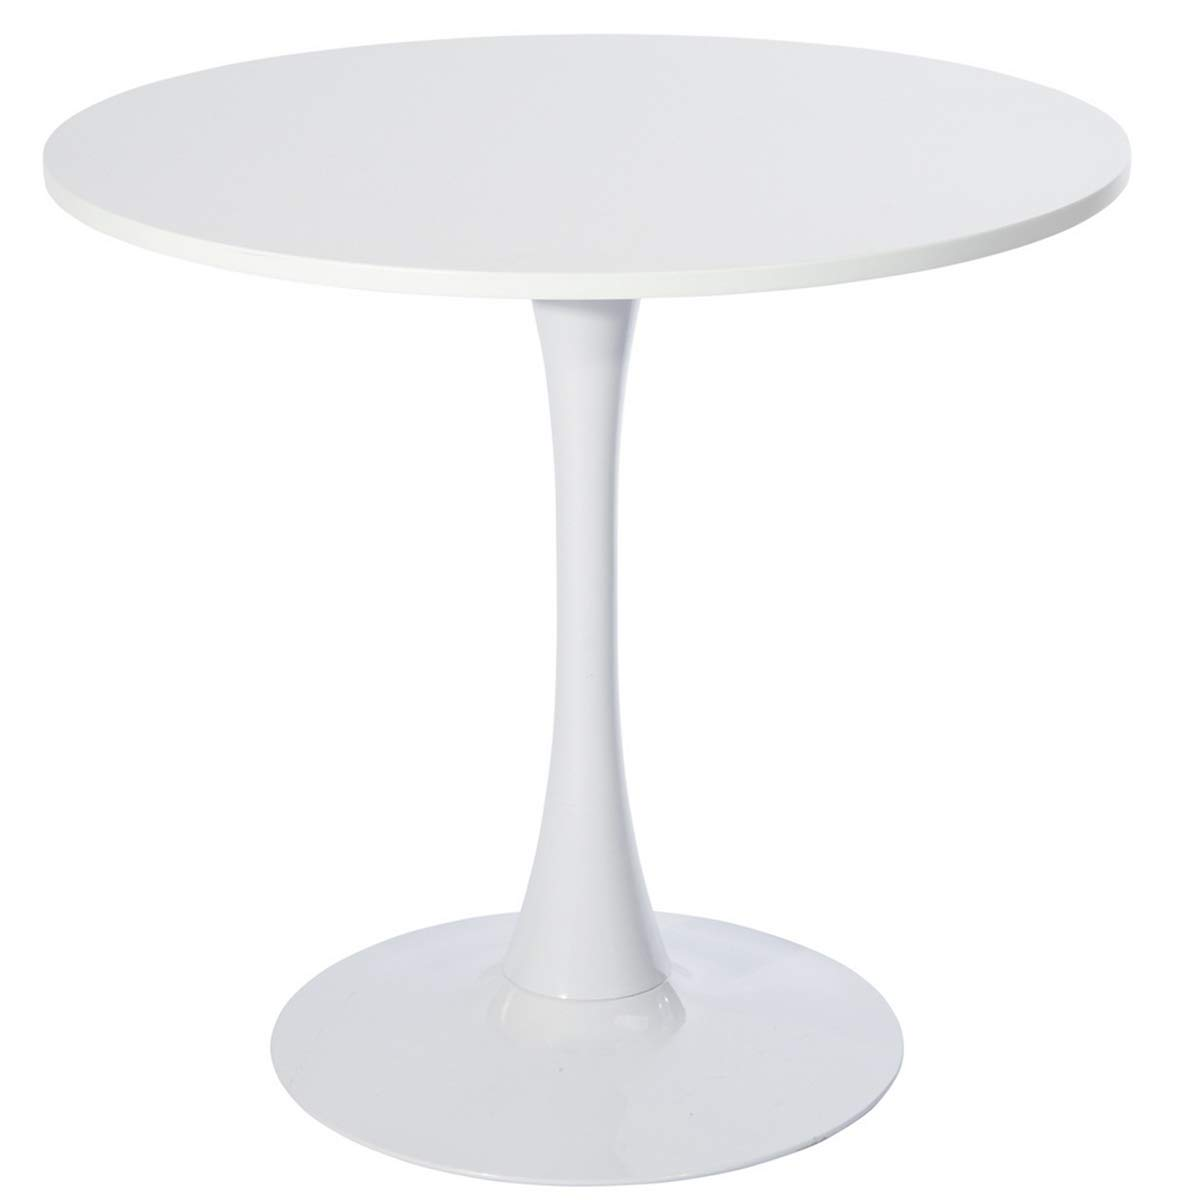 GreenForest Round Tulip Dining Table Pedestal Table, Small Kitchen Table Modern Wooden White Coffee Table with Strong Metal Base, 31.5-Inch